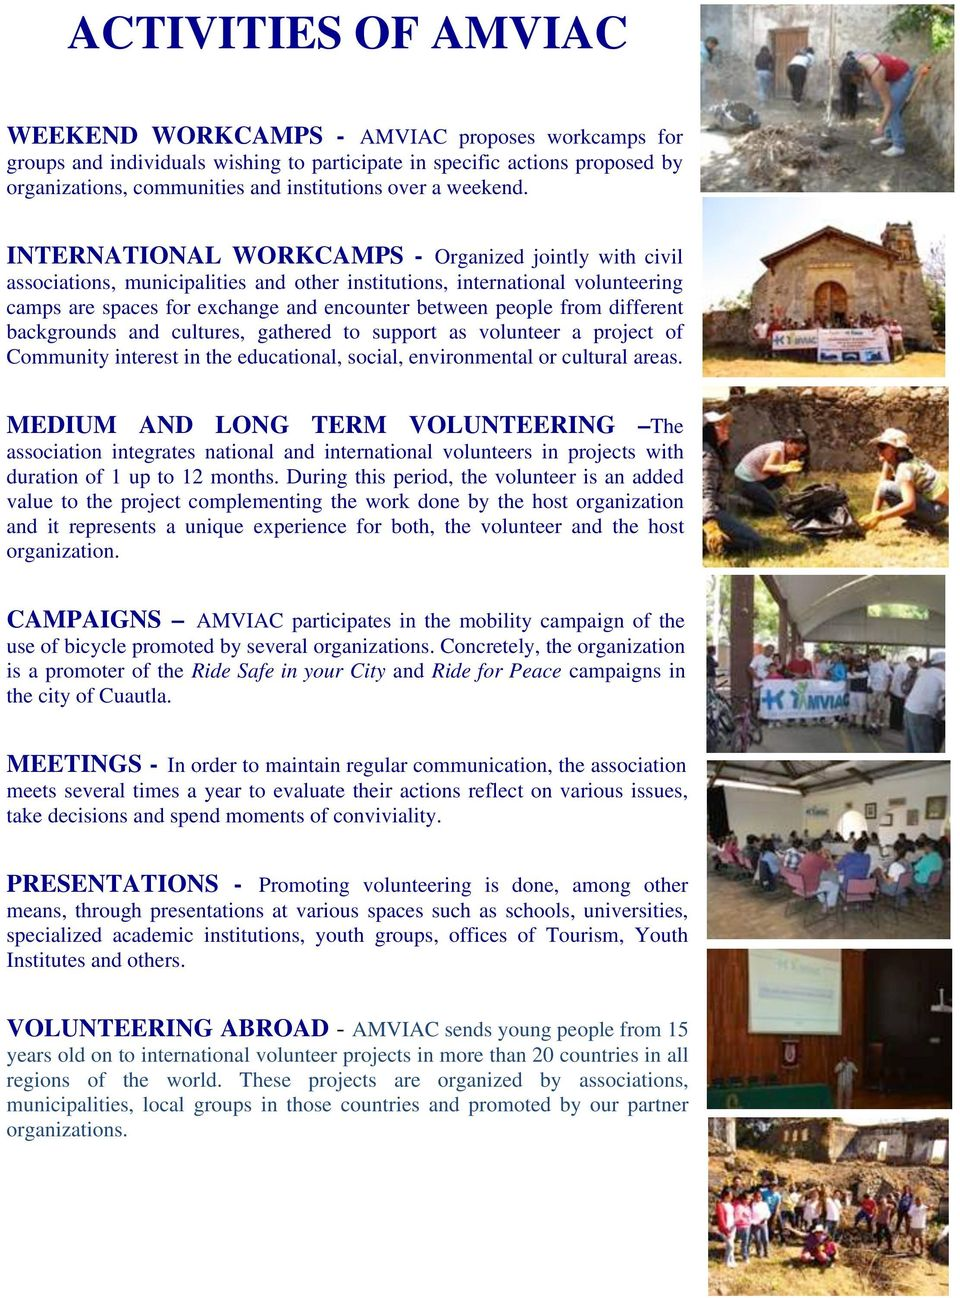 INTERNATIONAL WORKCAMPS - Organized jointly with civil associations, municipalities and other institutions, international volunteering camps are spaces for exchange and encounter between people from